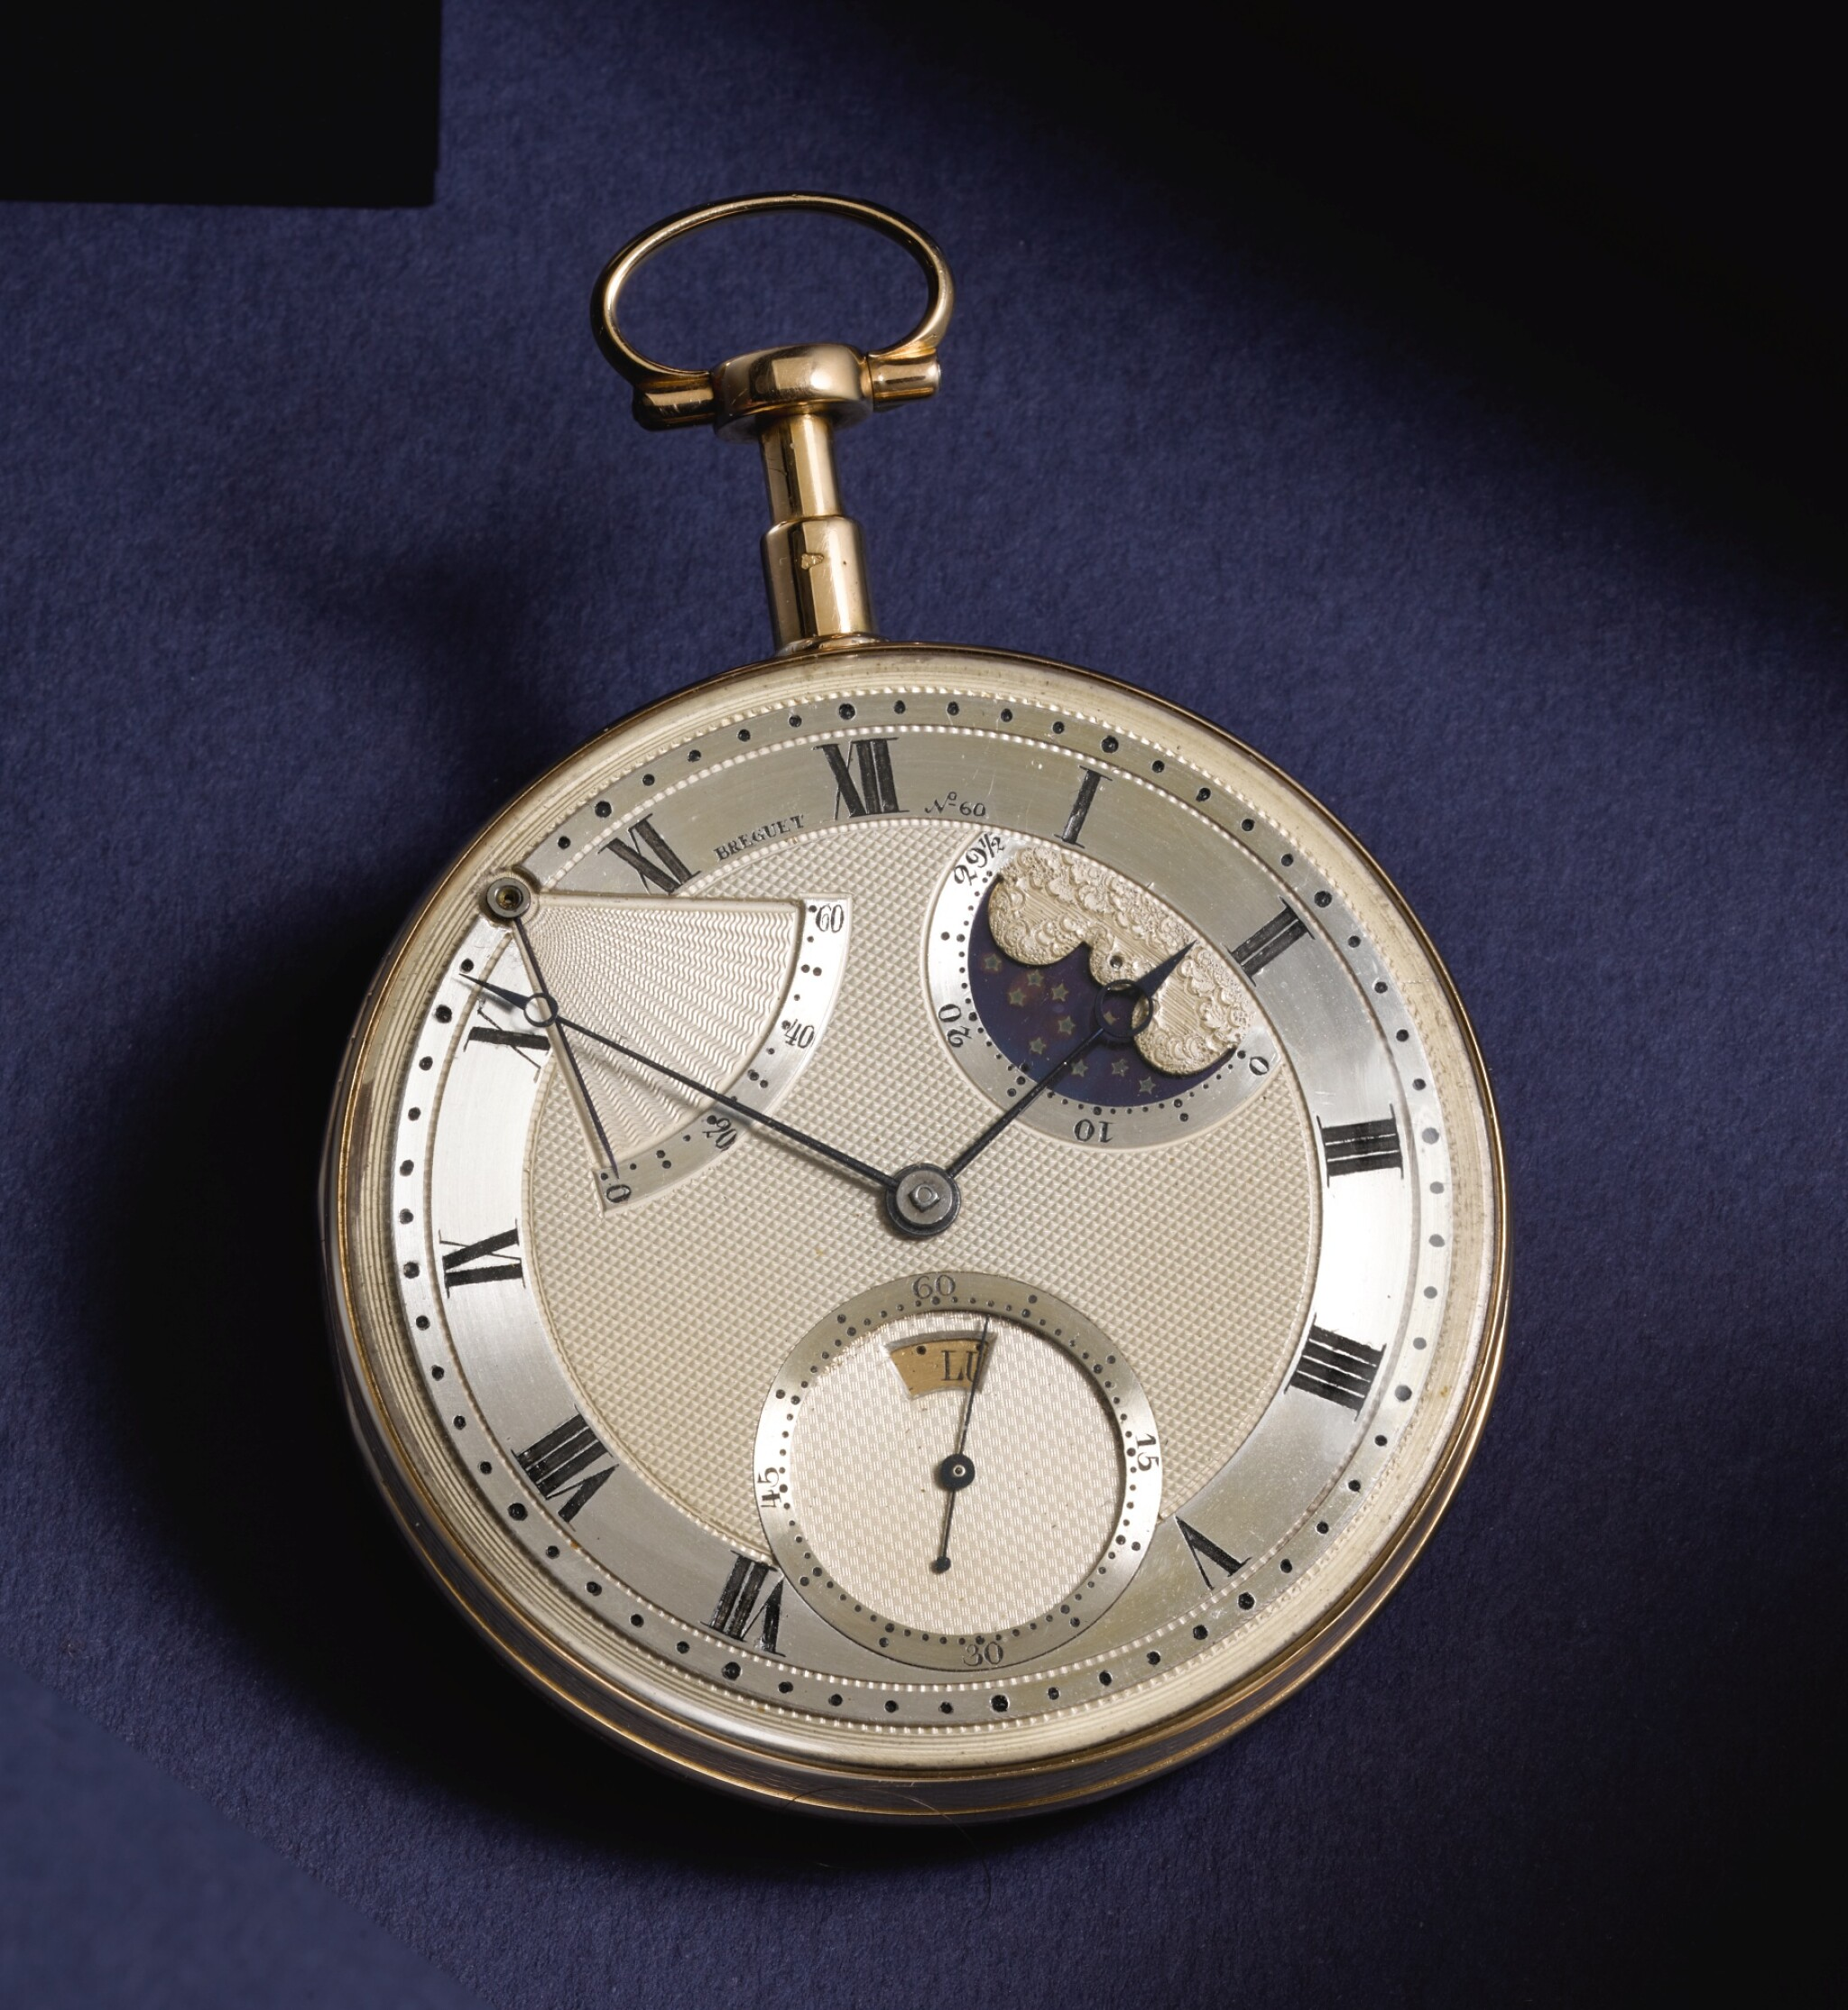 View full screen - View 1 of Lot 28. BREGUET  [ 寶璣]    AN EXCEPTIONAL AND VERY RARE GOLD SELF-WINDING QUARTER REPEATING WATCH WITH MOON PHASES, DAY OF THE WEEK AND POWER RESERVE  NO. 60, 'PÉRPETUELLE' SOLD TO MONSIEUR JOHNSTON ON 5 JANUARY 1796 FOR 3,120 FRANCS  [ 極罕有黃金自動上鏈二問懷錶備月相、星期及動力儲存顯示,編號60,1796年1月5日以3,120法郎售出].